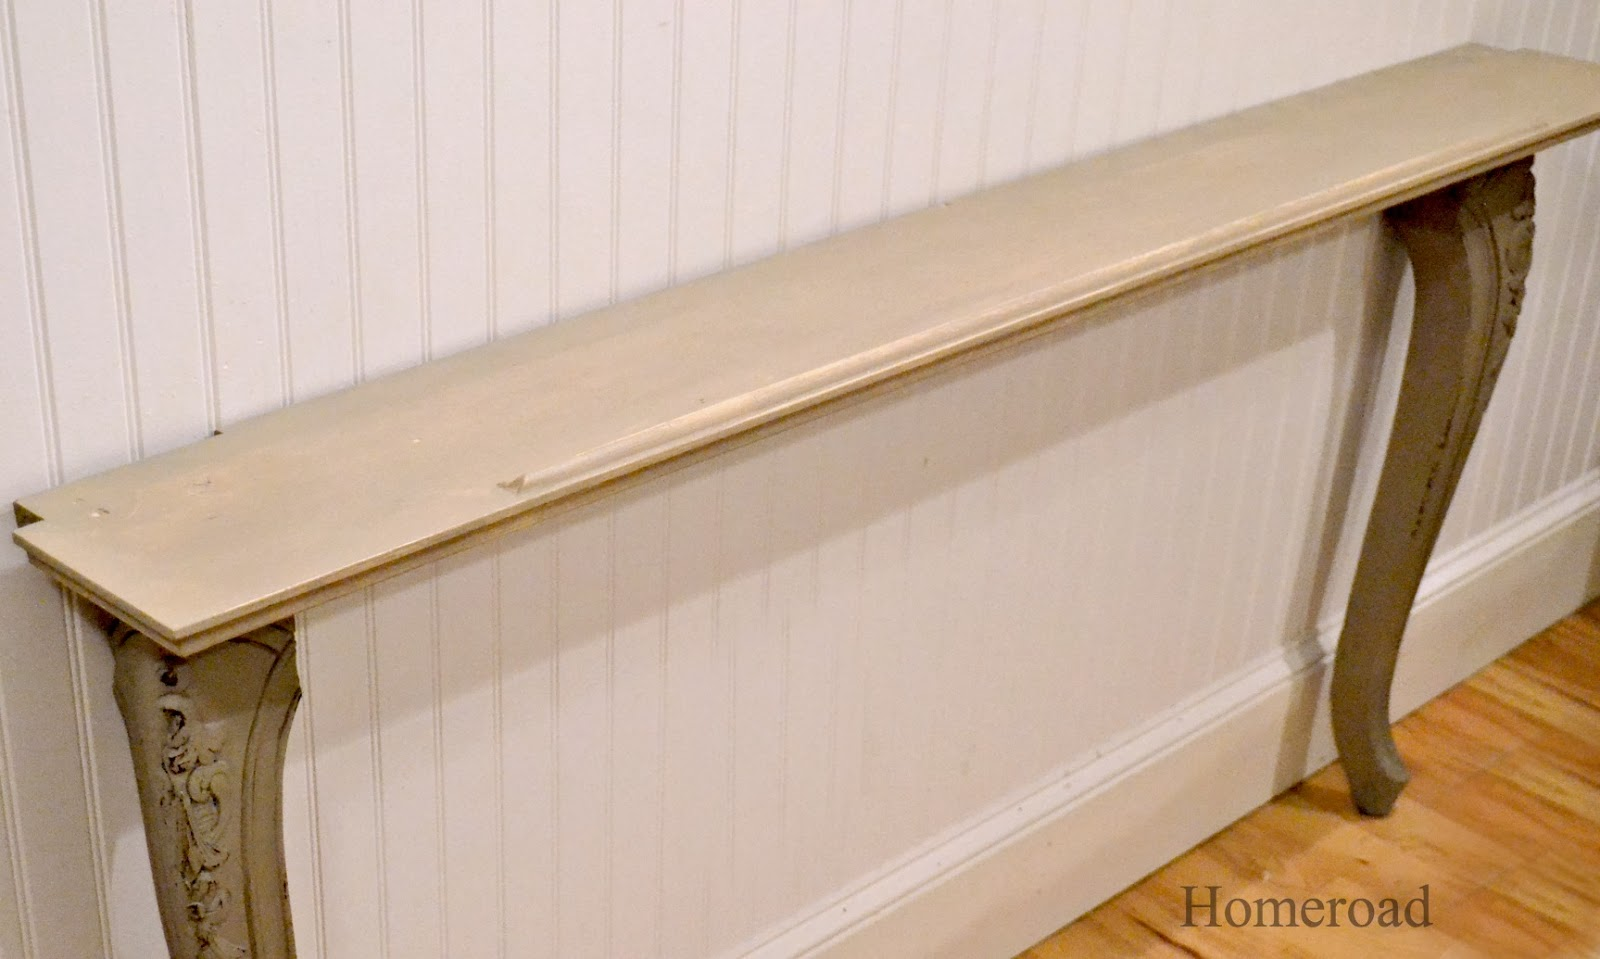 Behind The Sofa Table Single Bed Best Price Diy Narrow Wall Or Homeroad